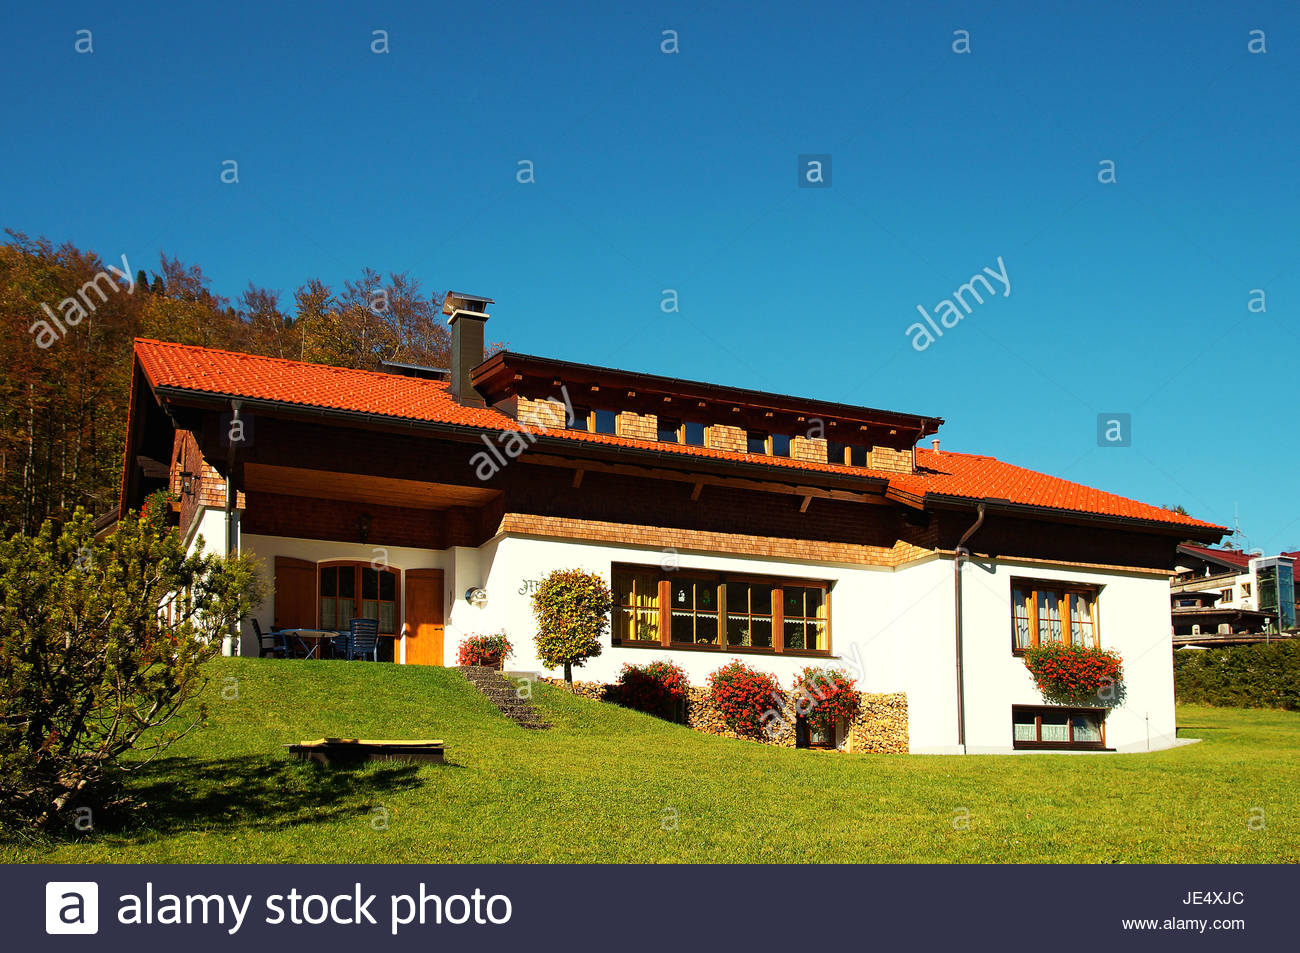 Einfamilienhaus / single family house Stock Photo